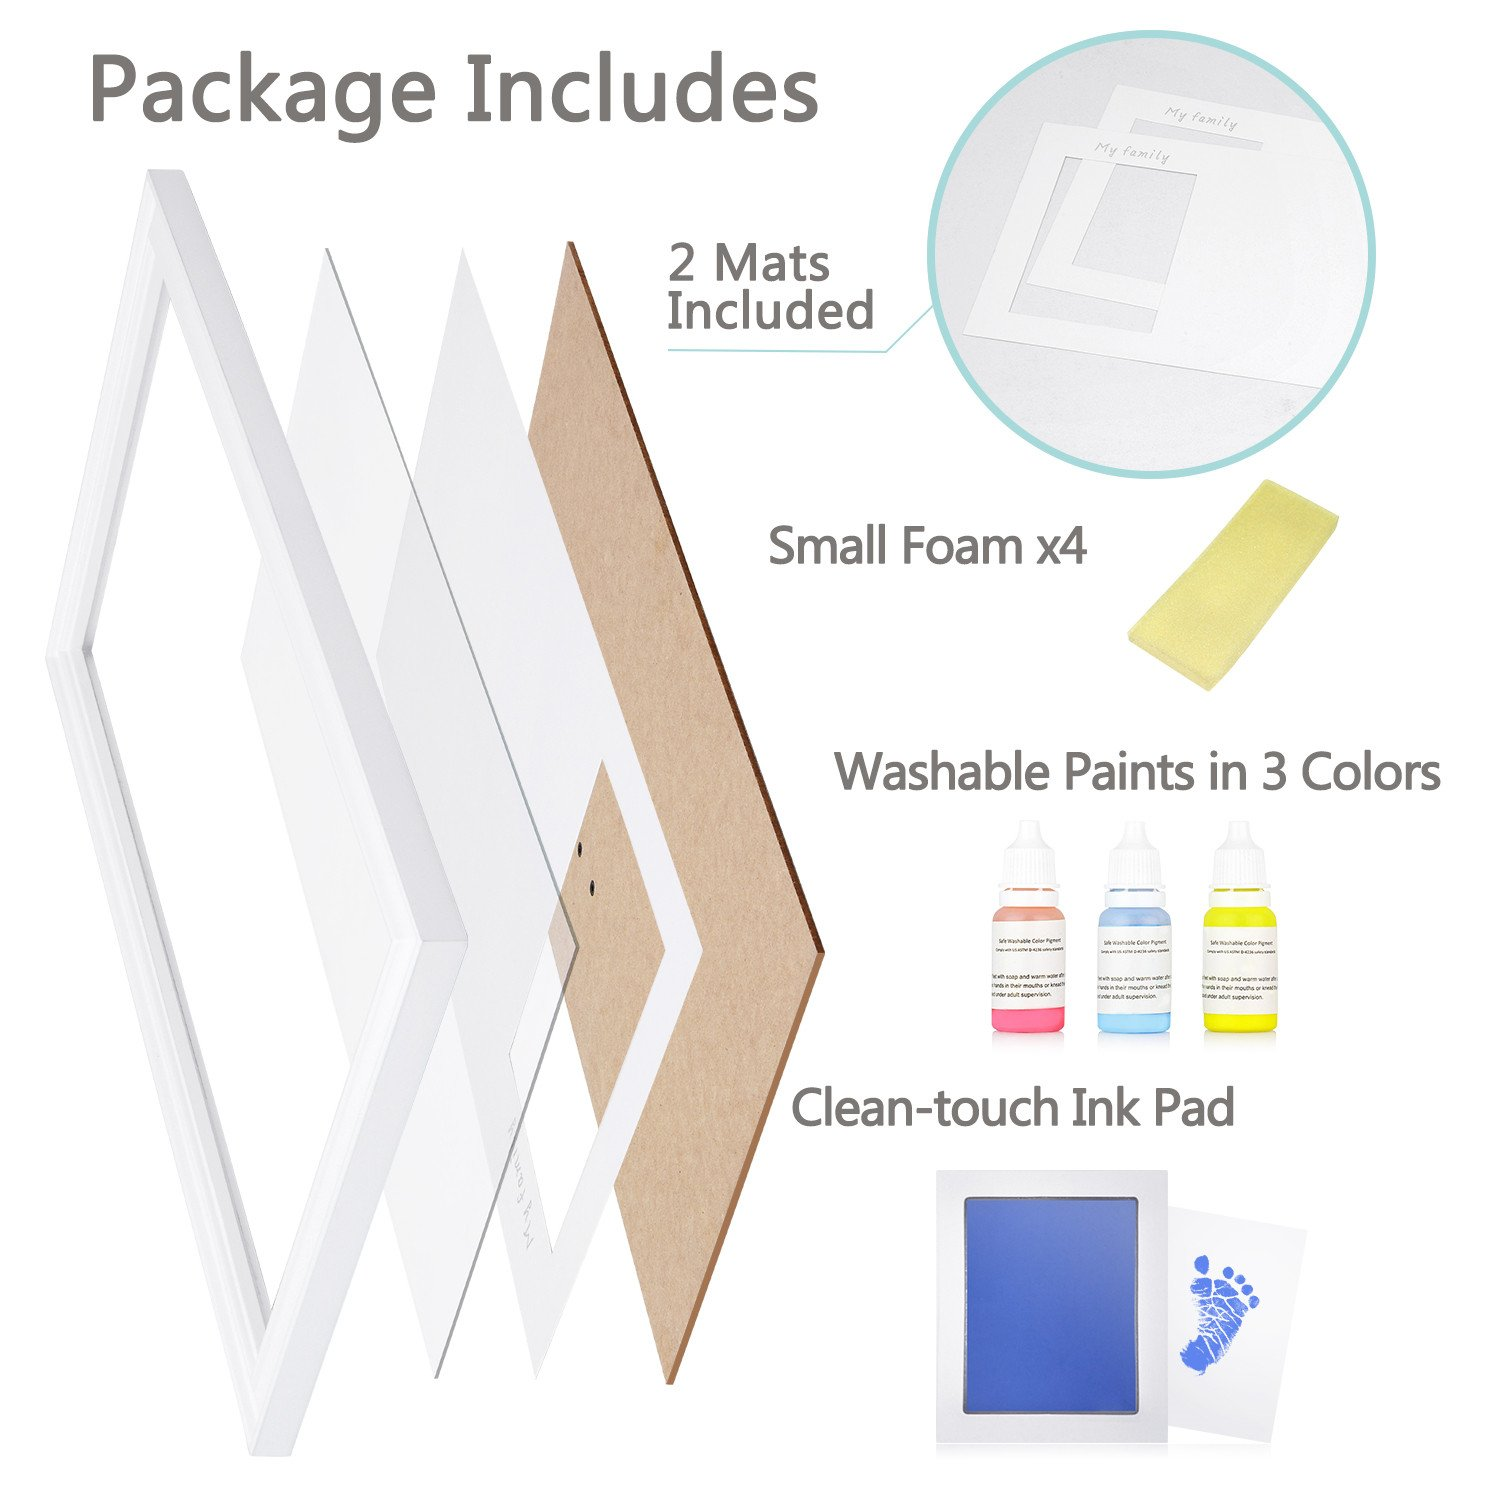 DIY Family Photo+ Family/Baby Handprints/Footprints Kit with 10 X 17'' Elegant White Wood Picture Frame, Non-Toxic Watercolor Paints, Baby Clean-Touch Ink Pad, Baby Registry Shower Keepsakes Gifts by NWK (Image #4)